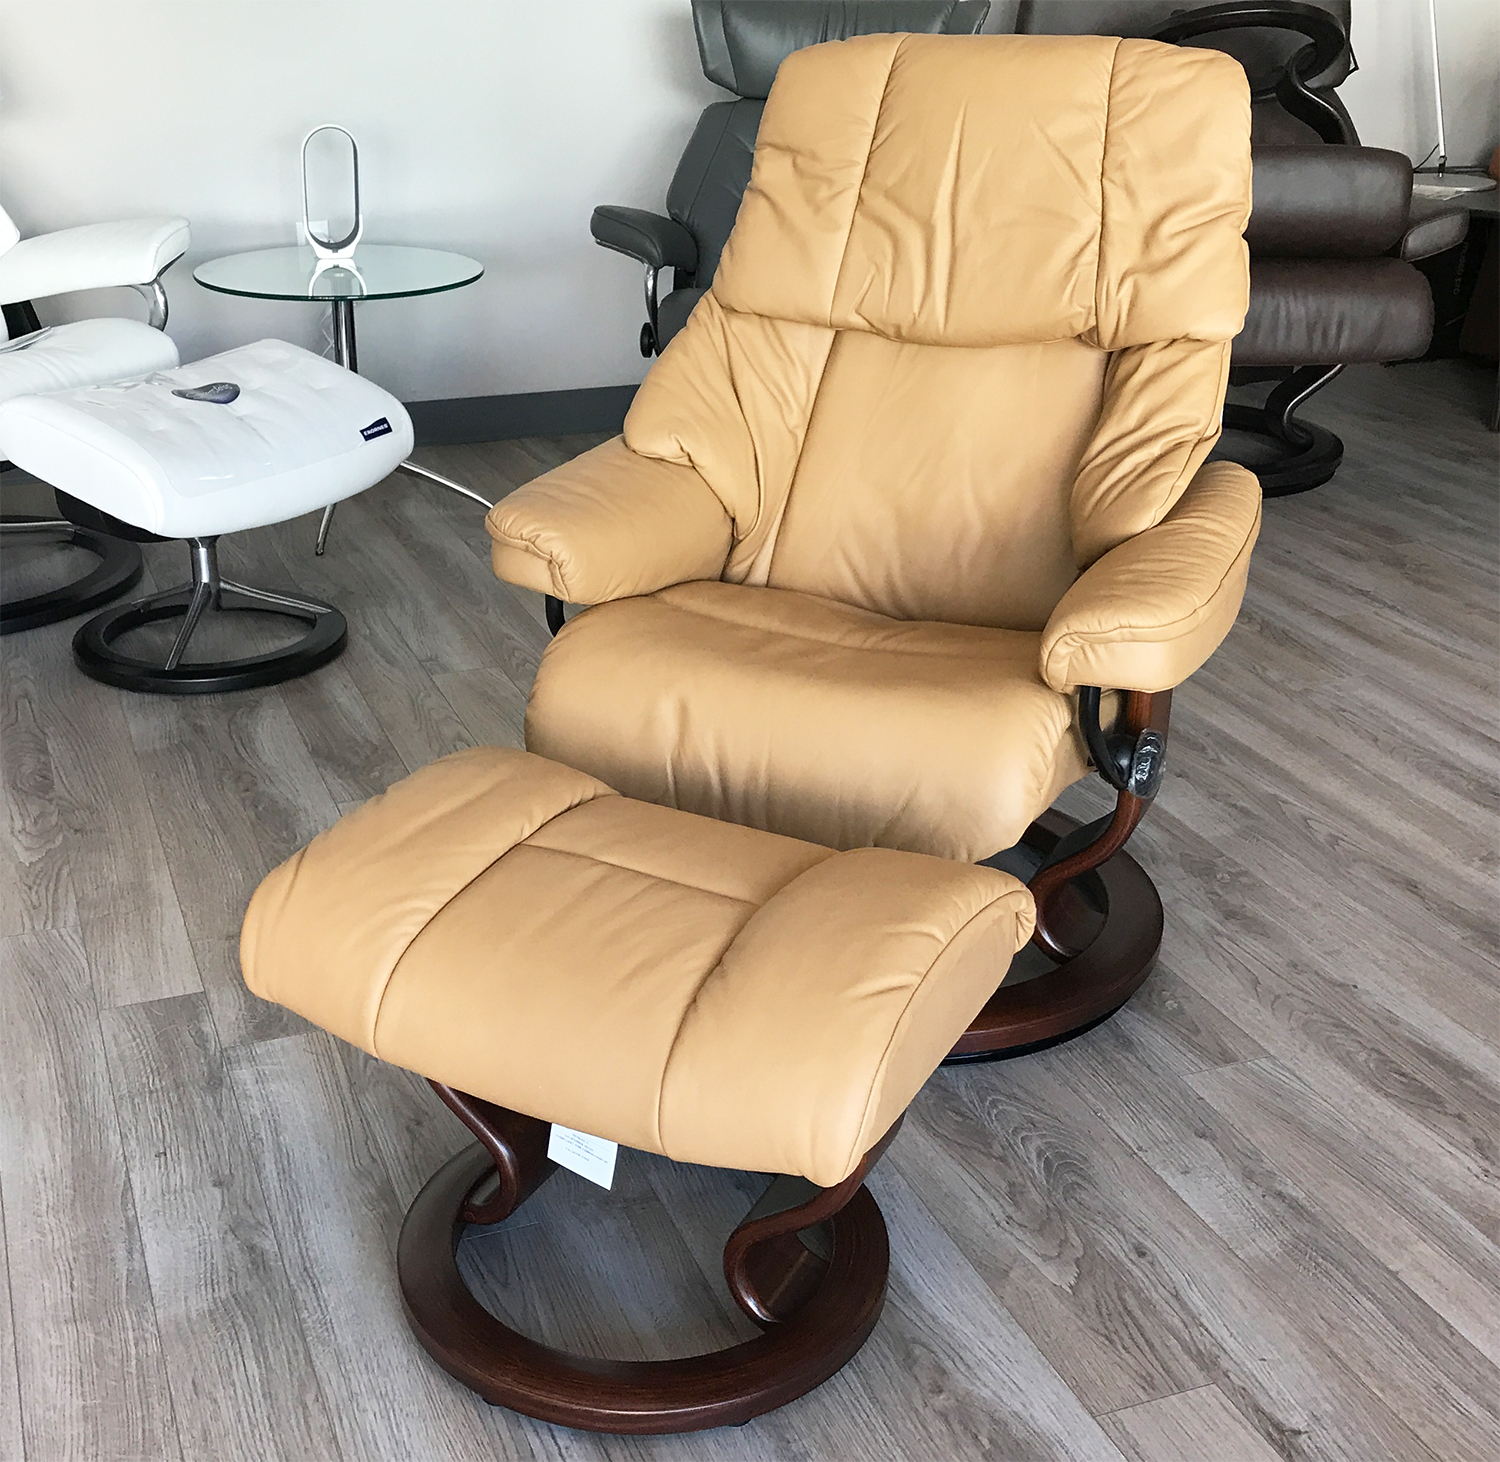 Ideal Stressless Reno Paloma Pearl Leather Recliner Chair and Ottoman by  DL65